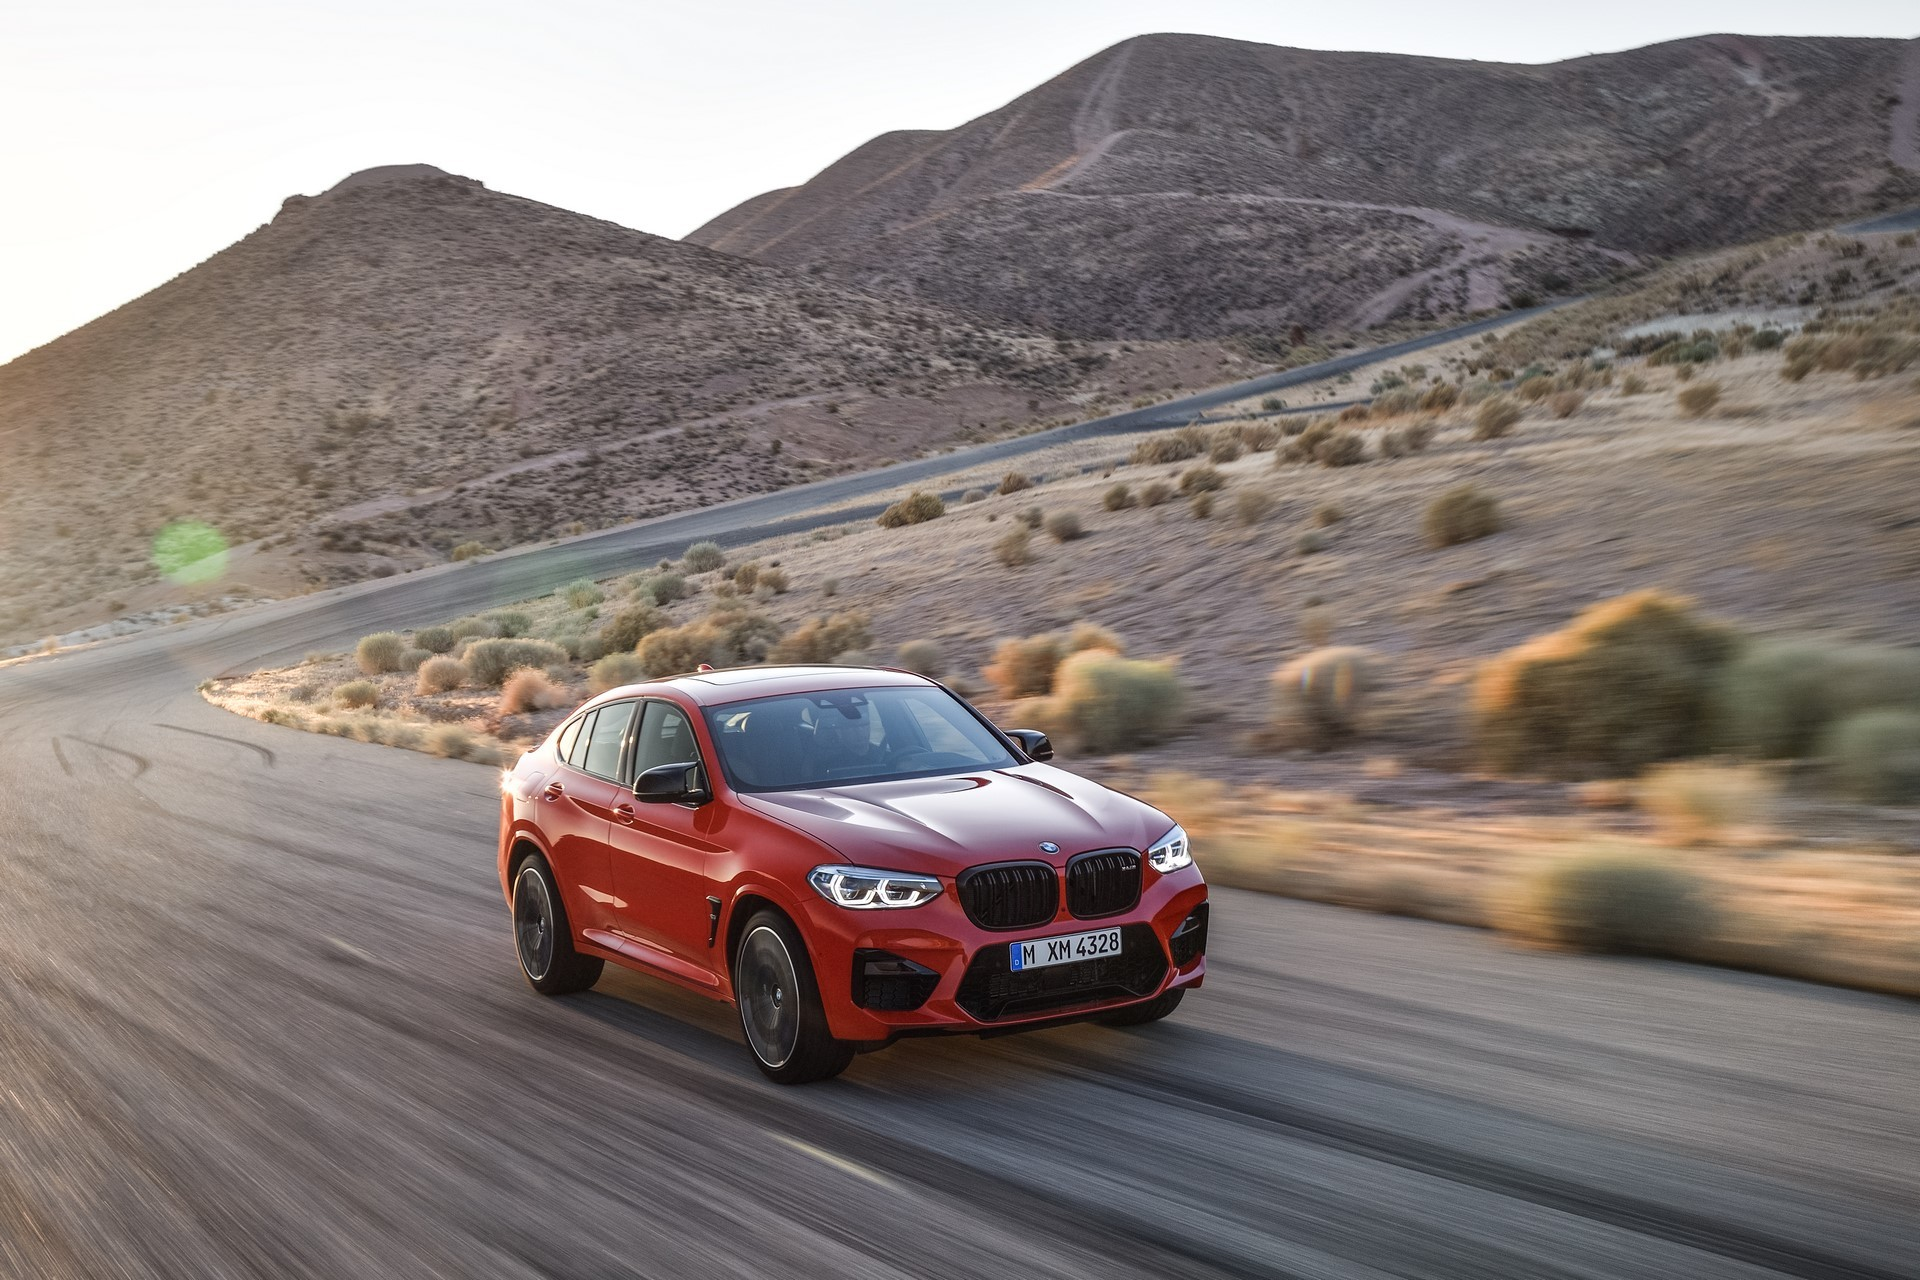 BMW X3 M and X4 M 2019 (66)